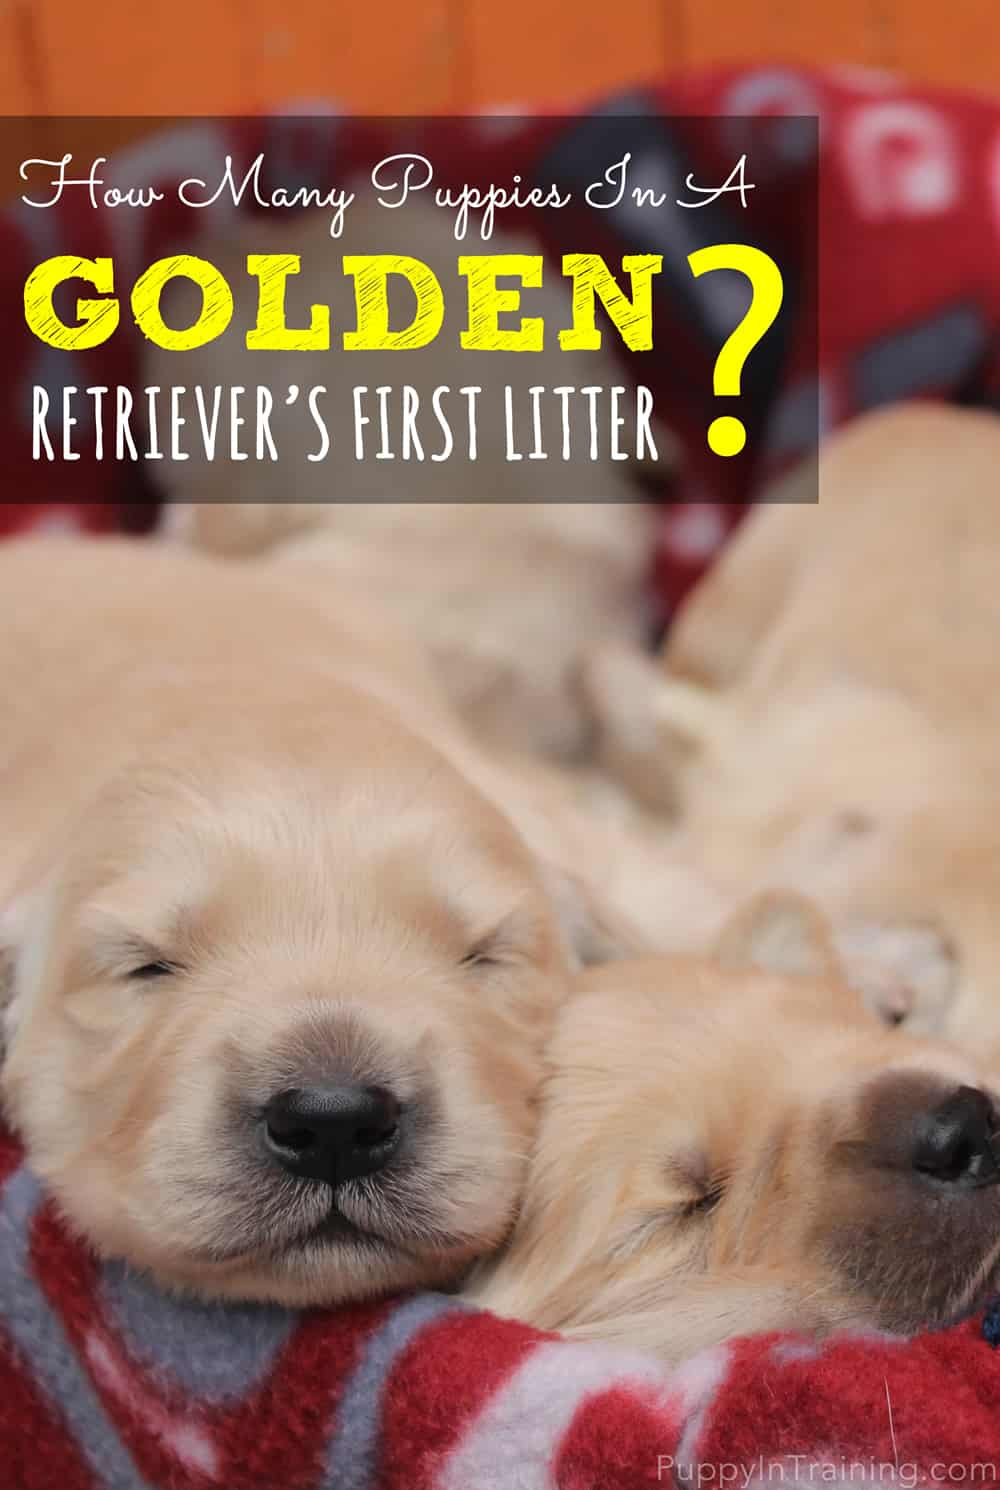 What Will Be Our Golden Retriever's First Litter Size?